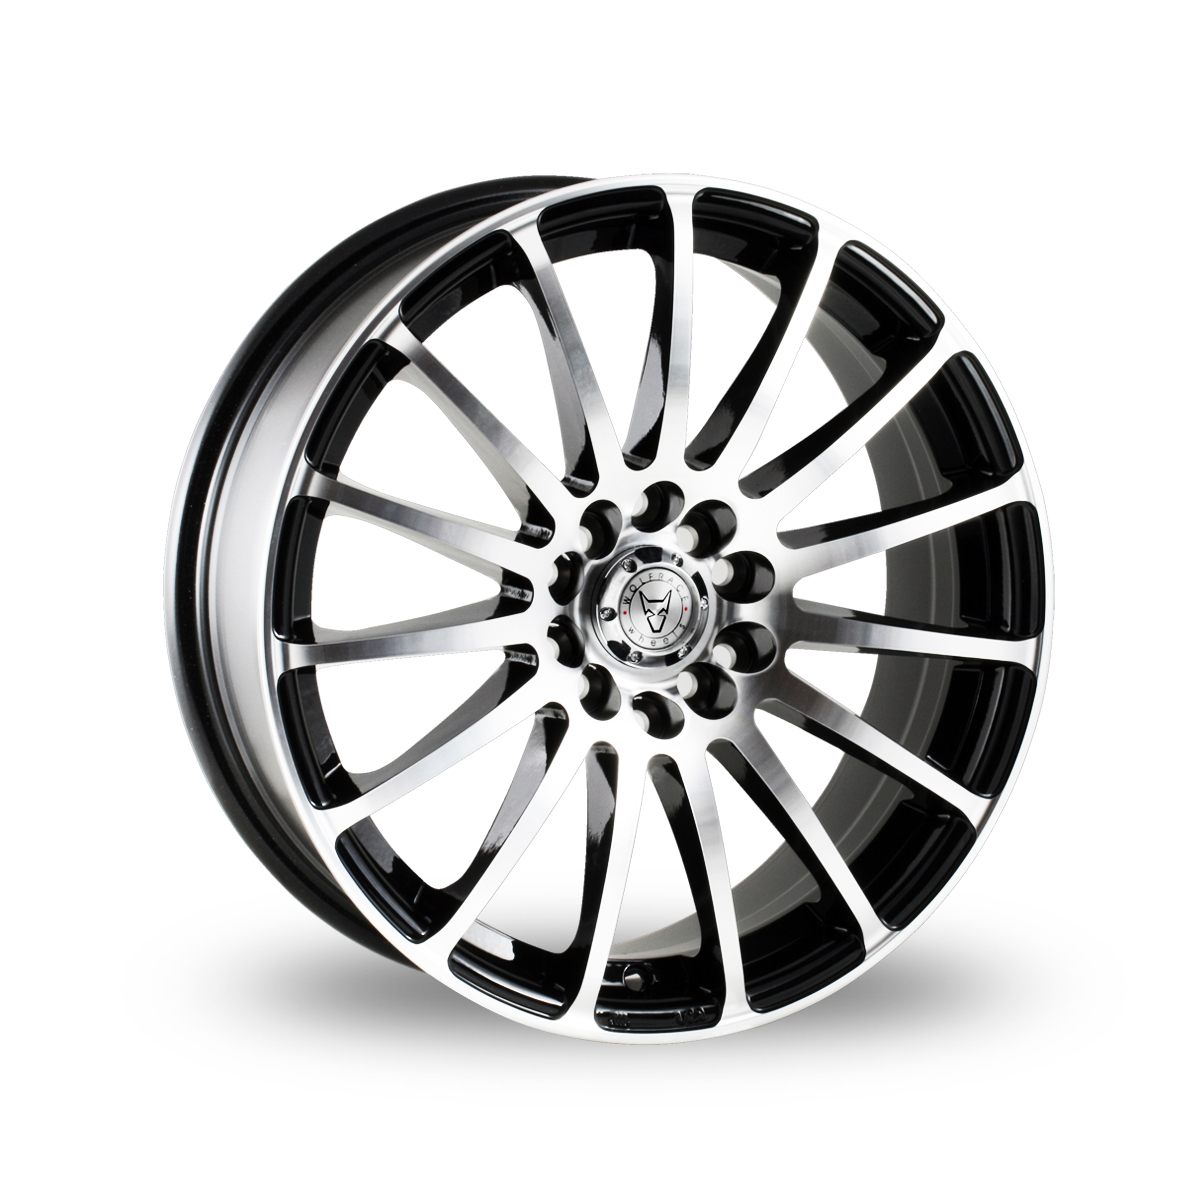 15 inch Alloys - Fit Nissan 100 NX from £199 (set of 4)